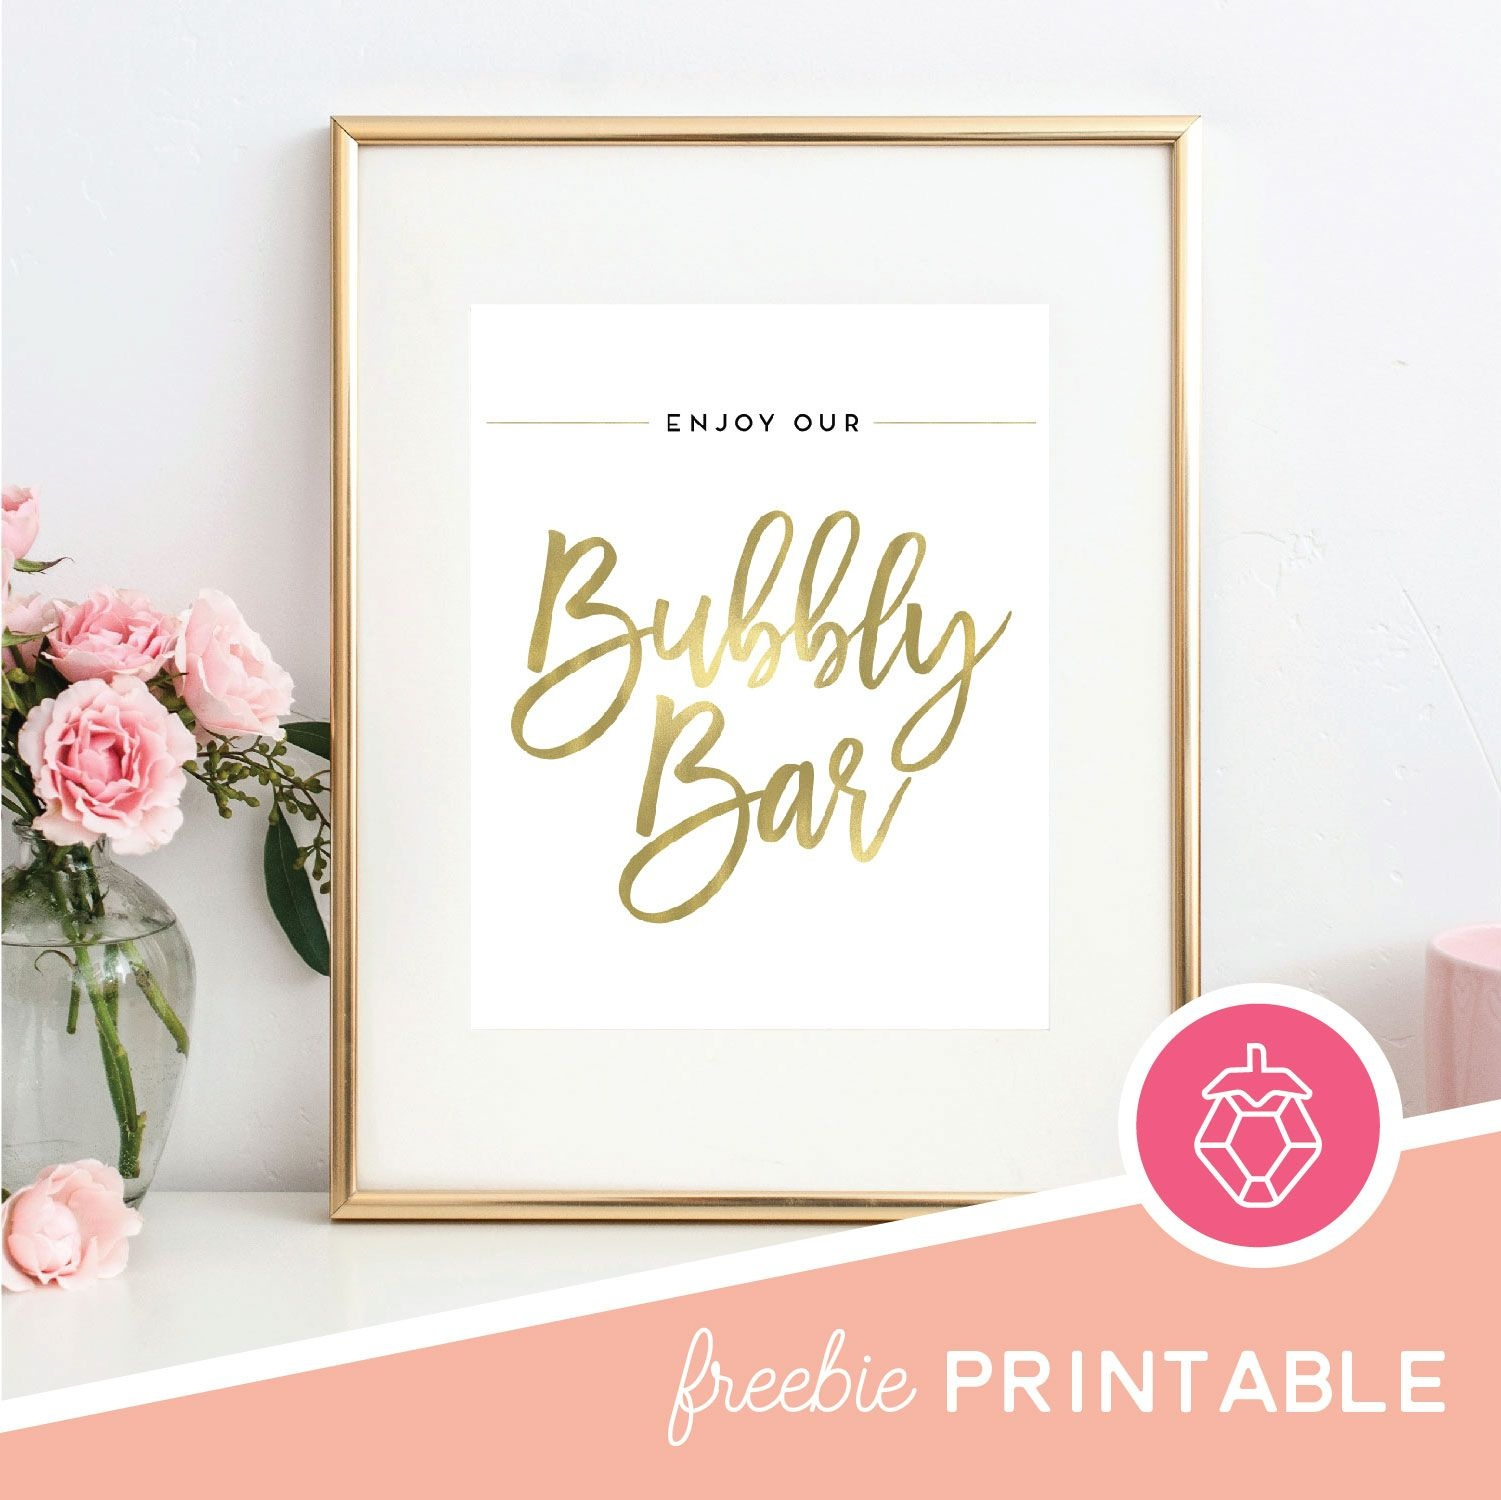 Free Printable - Bubbly Bar Sign | Party | Bubbly Bar, Bar Signs - Free Sangria Bar Sign Printable